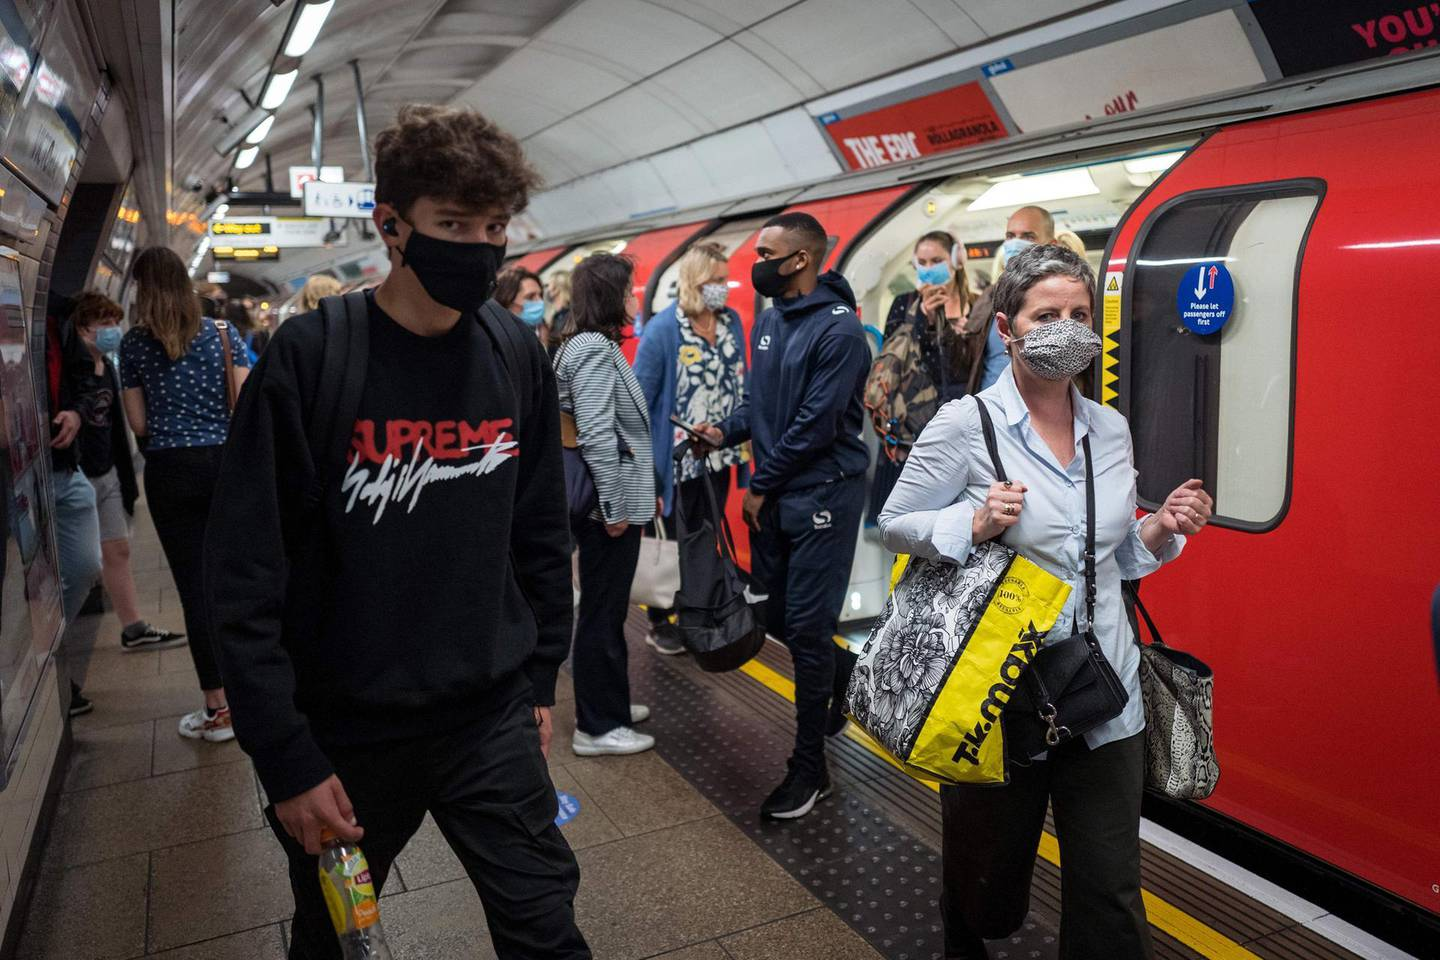 Commuters wearing a face mask or covering due to the COVID-19 pandemic, walk past a London underground tube train at Victoria station, during the evening 'rus hour' in central London on September 23, 2020..  The UK on Wednesday reported 6,178 new coronavirus cases, a marked jump in the daily infection rate that comes a day after Prime Minister Boris Johnson unveiled new nationwide restrictions. / AFP / Tolga AKMEN